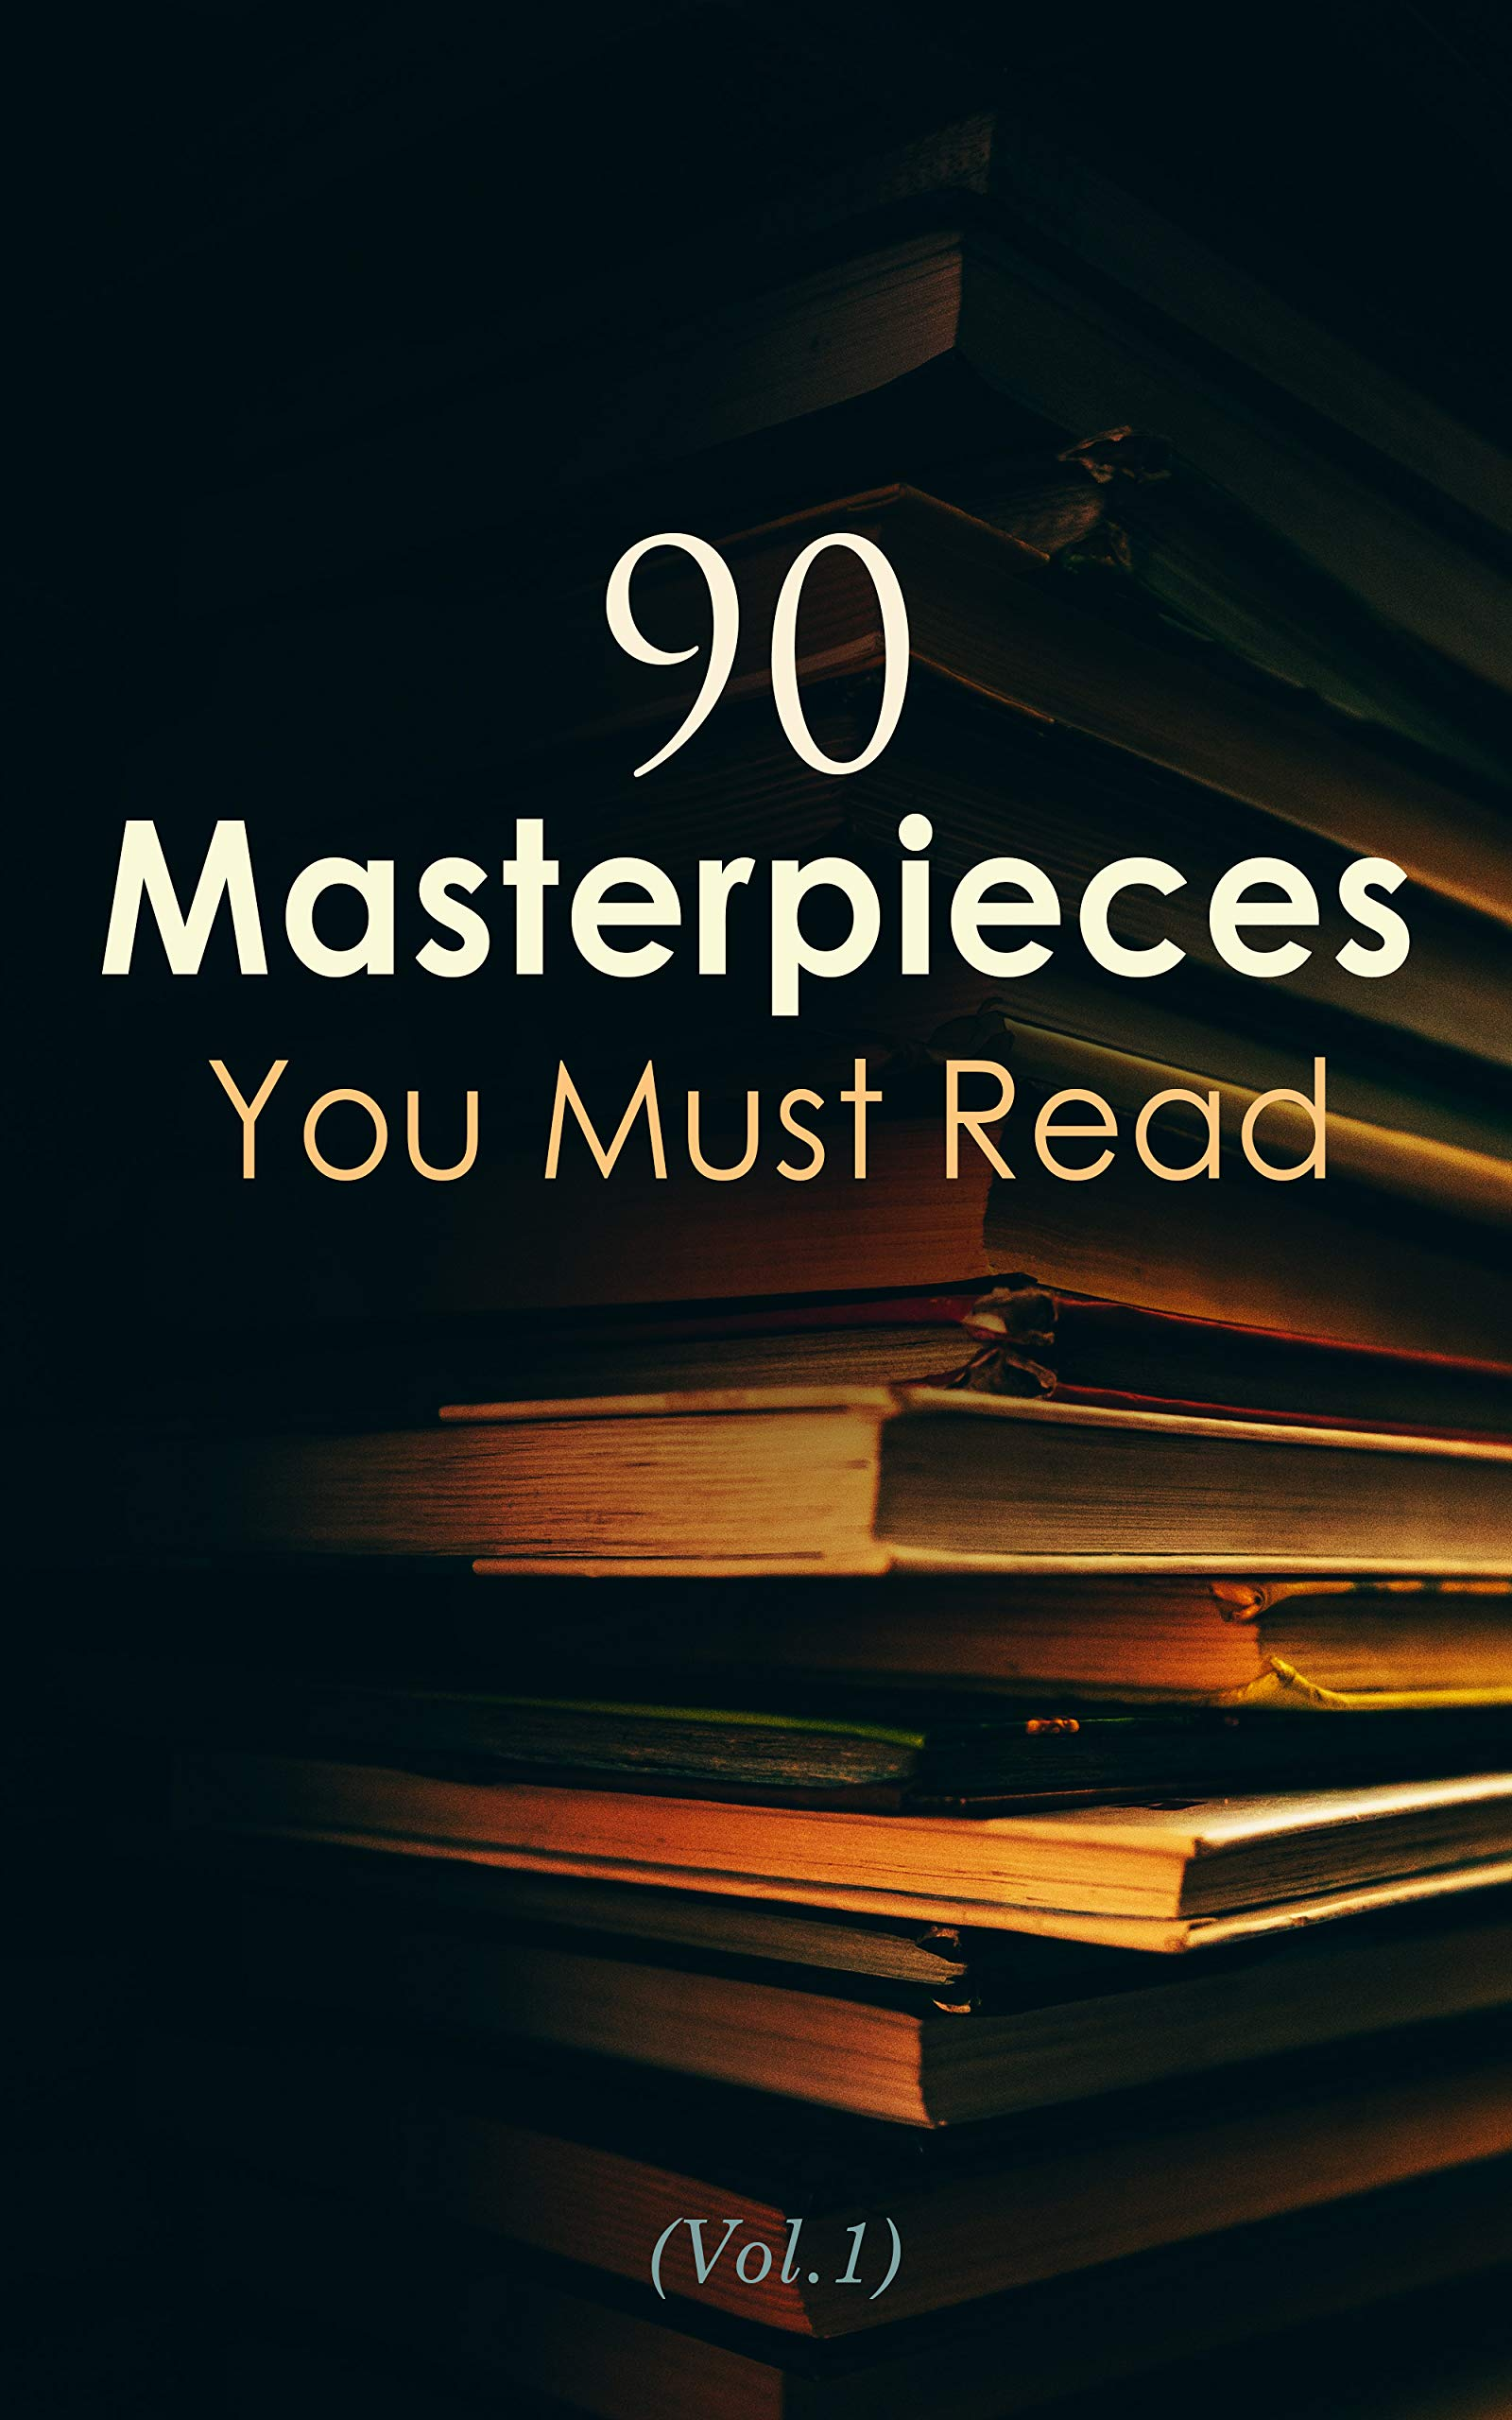 90 Masterpieces You Must Read (Vol.1): Novels, Poetry, Plays, Short Stories, Essays, Psychology & Philosophy: The Madman, Moby-Dick, Siddhartha, Crime ... Heart of Darkness, The Red Badge of Courage